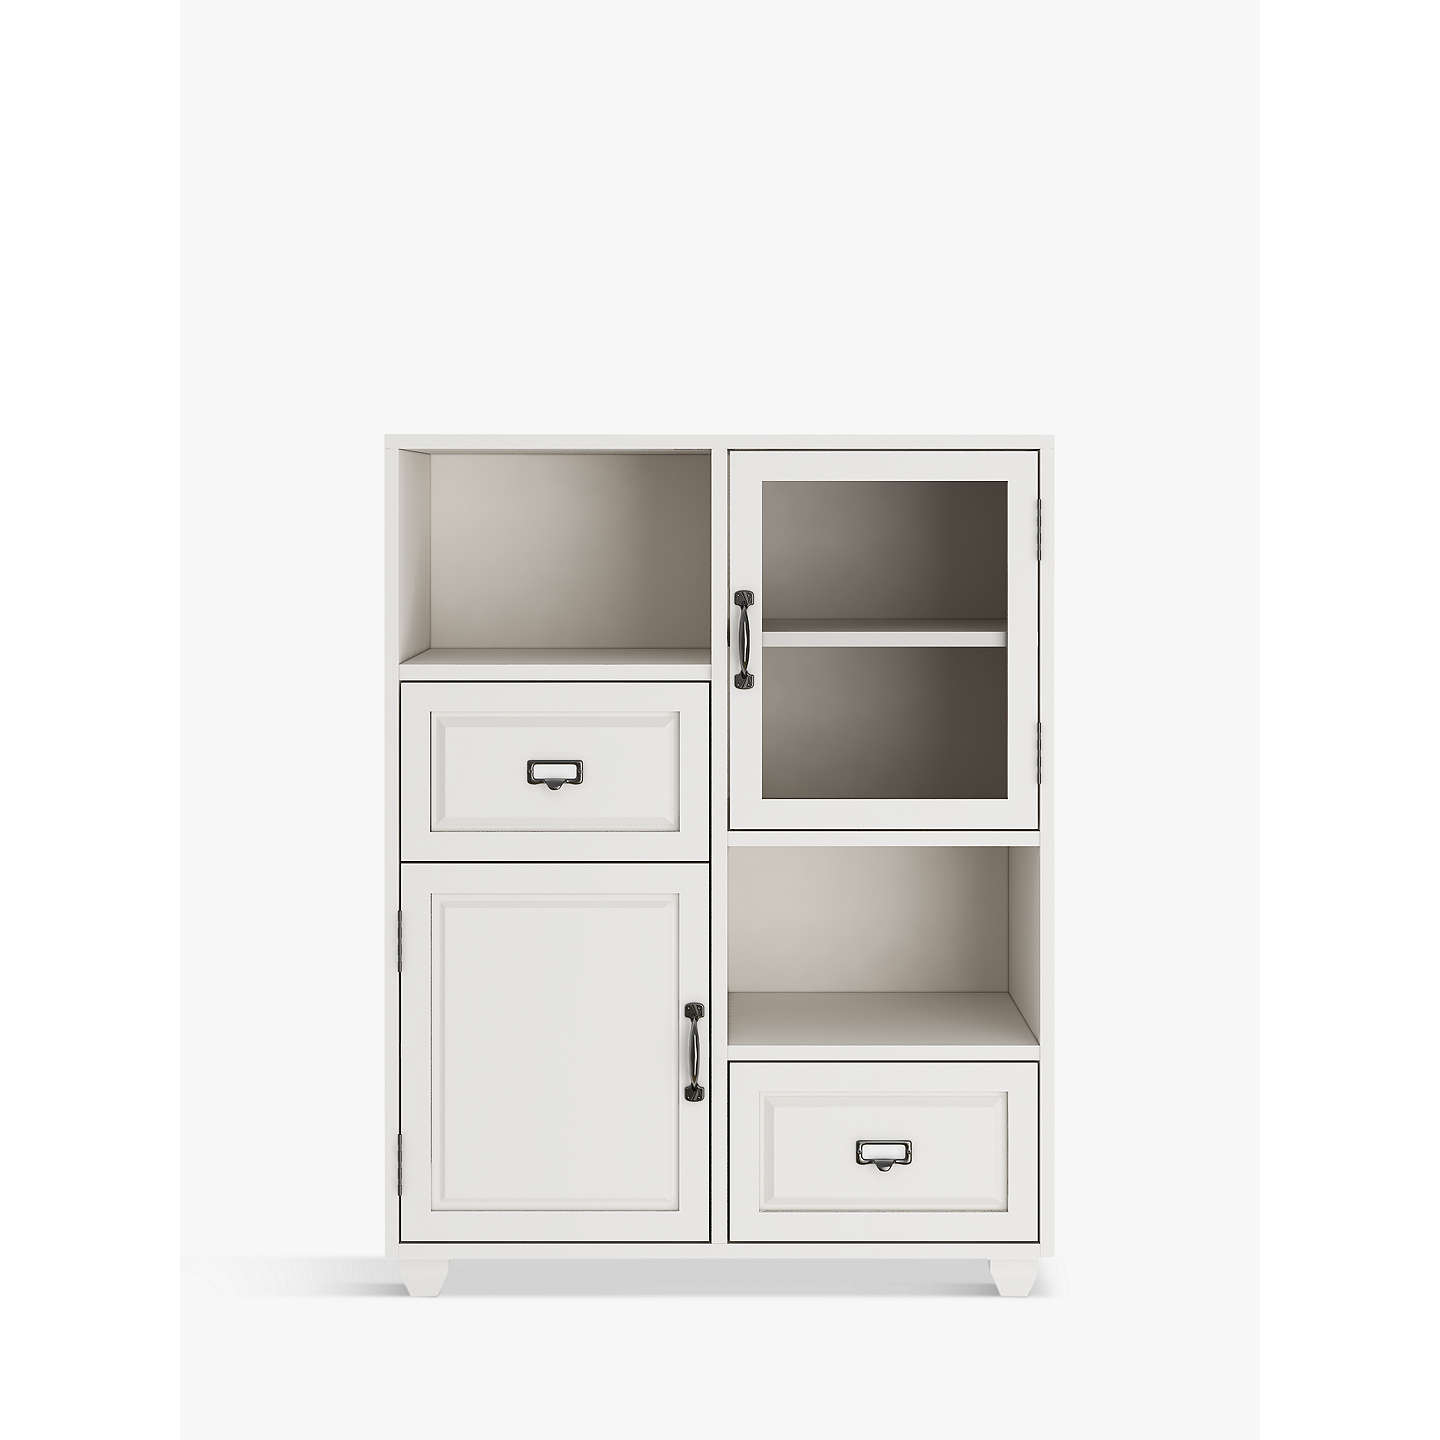 Free Standing Kitchen Cabinets John Lewis: John Lewis Apothecary Double Towel Cupboard At John Lewis